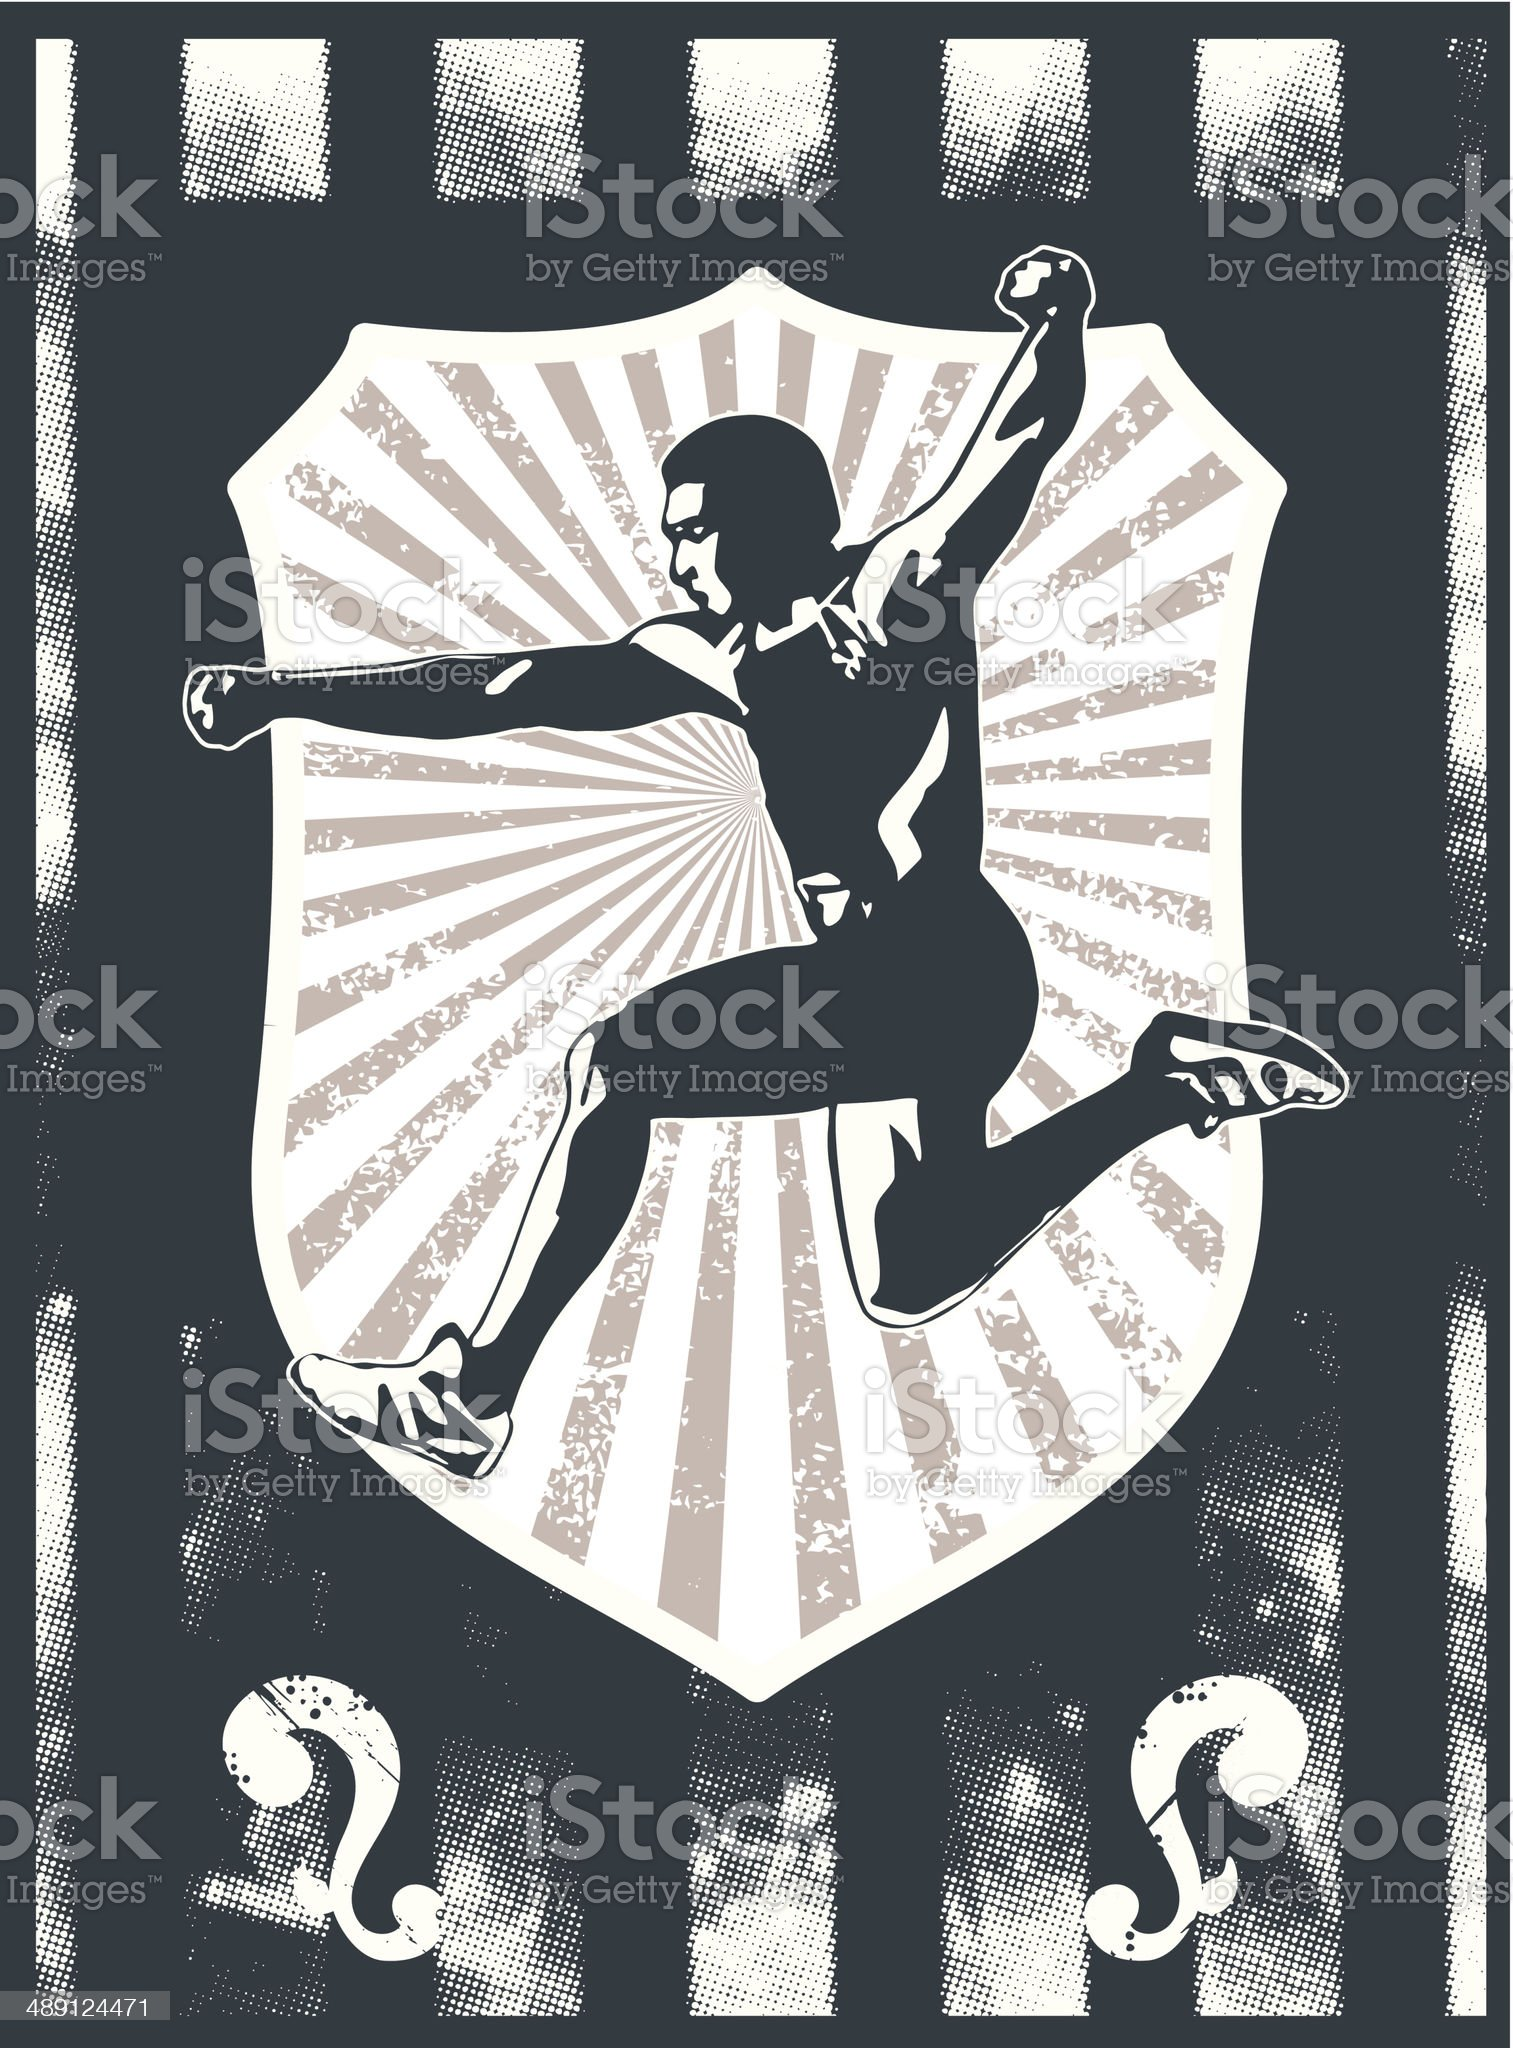 grunge sport shield with athlete jumping royalty-free stock vector art